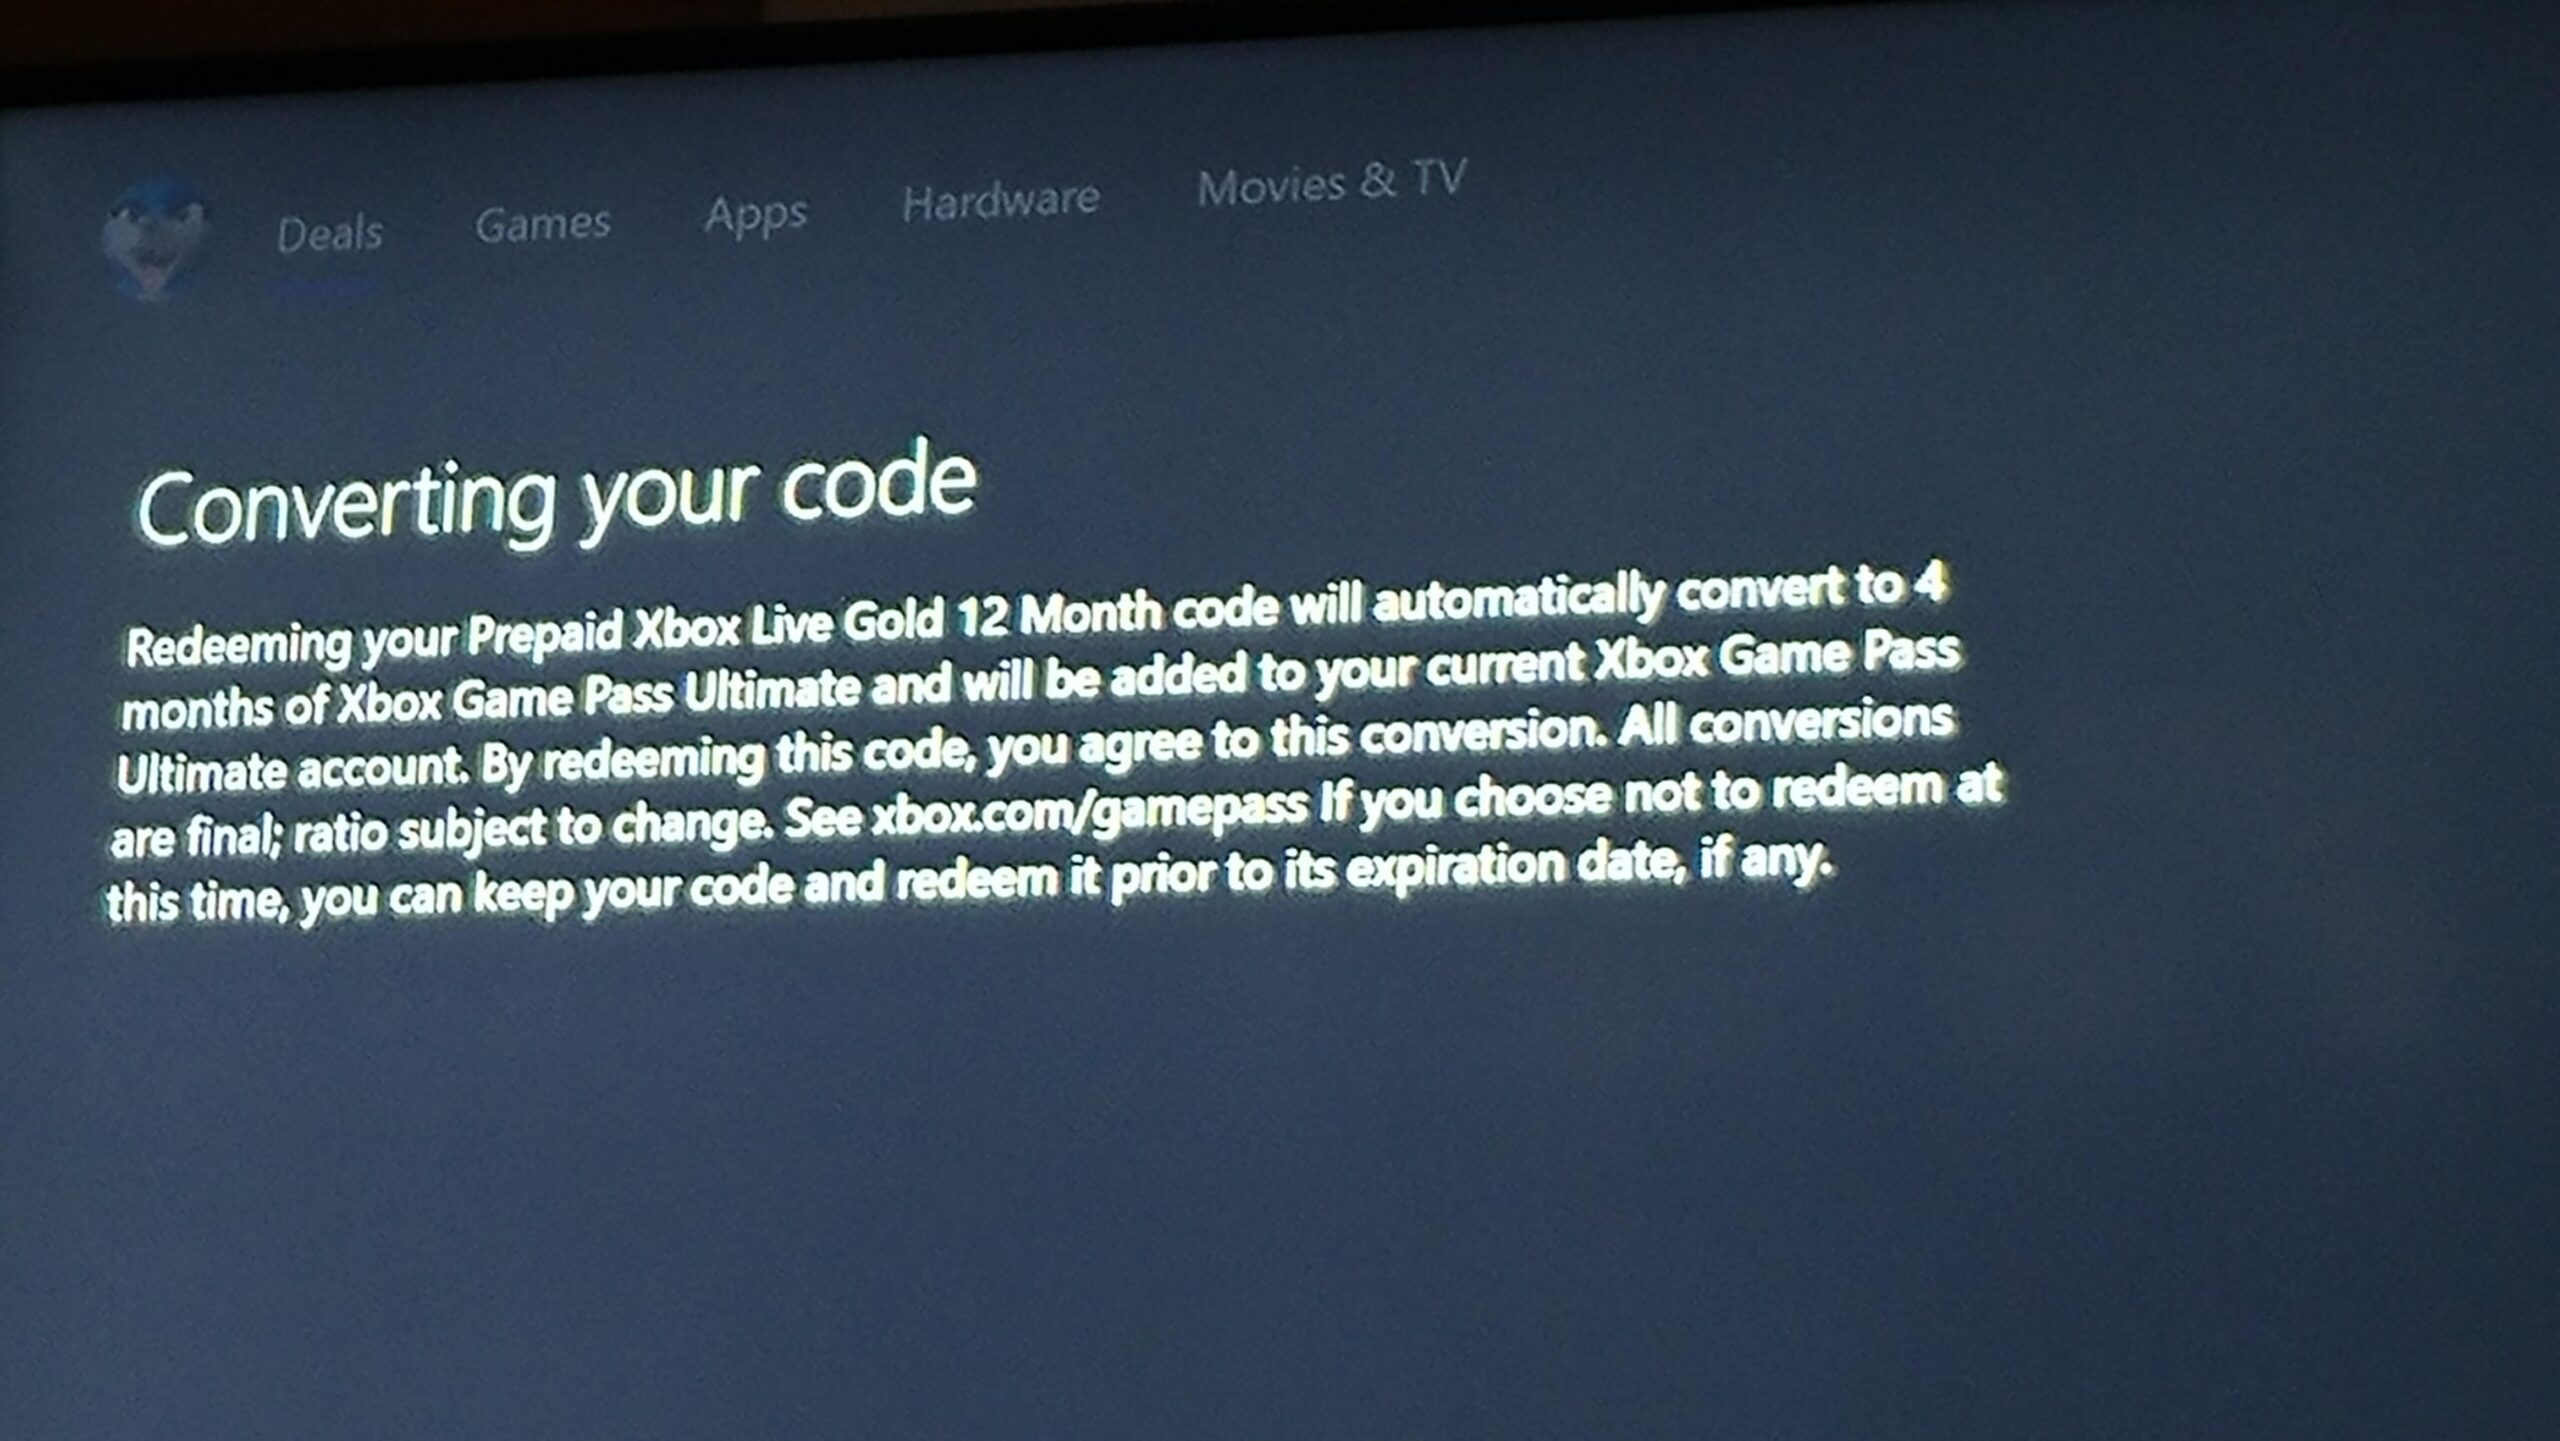 Game Pass 12 Month Code This Twelvemonth Subscription Xbox Microsoft